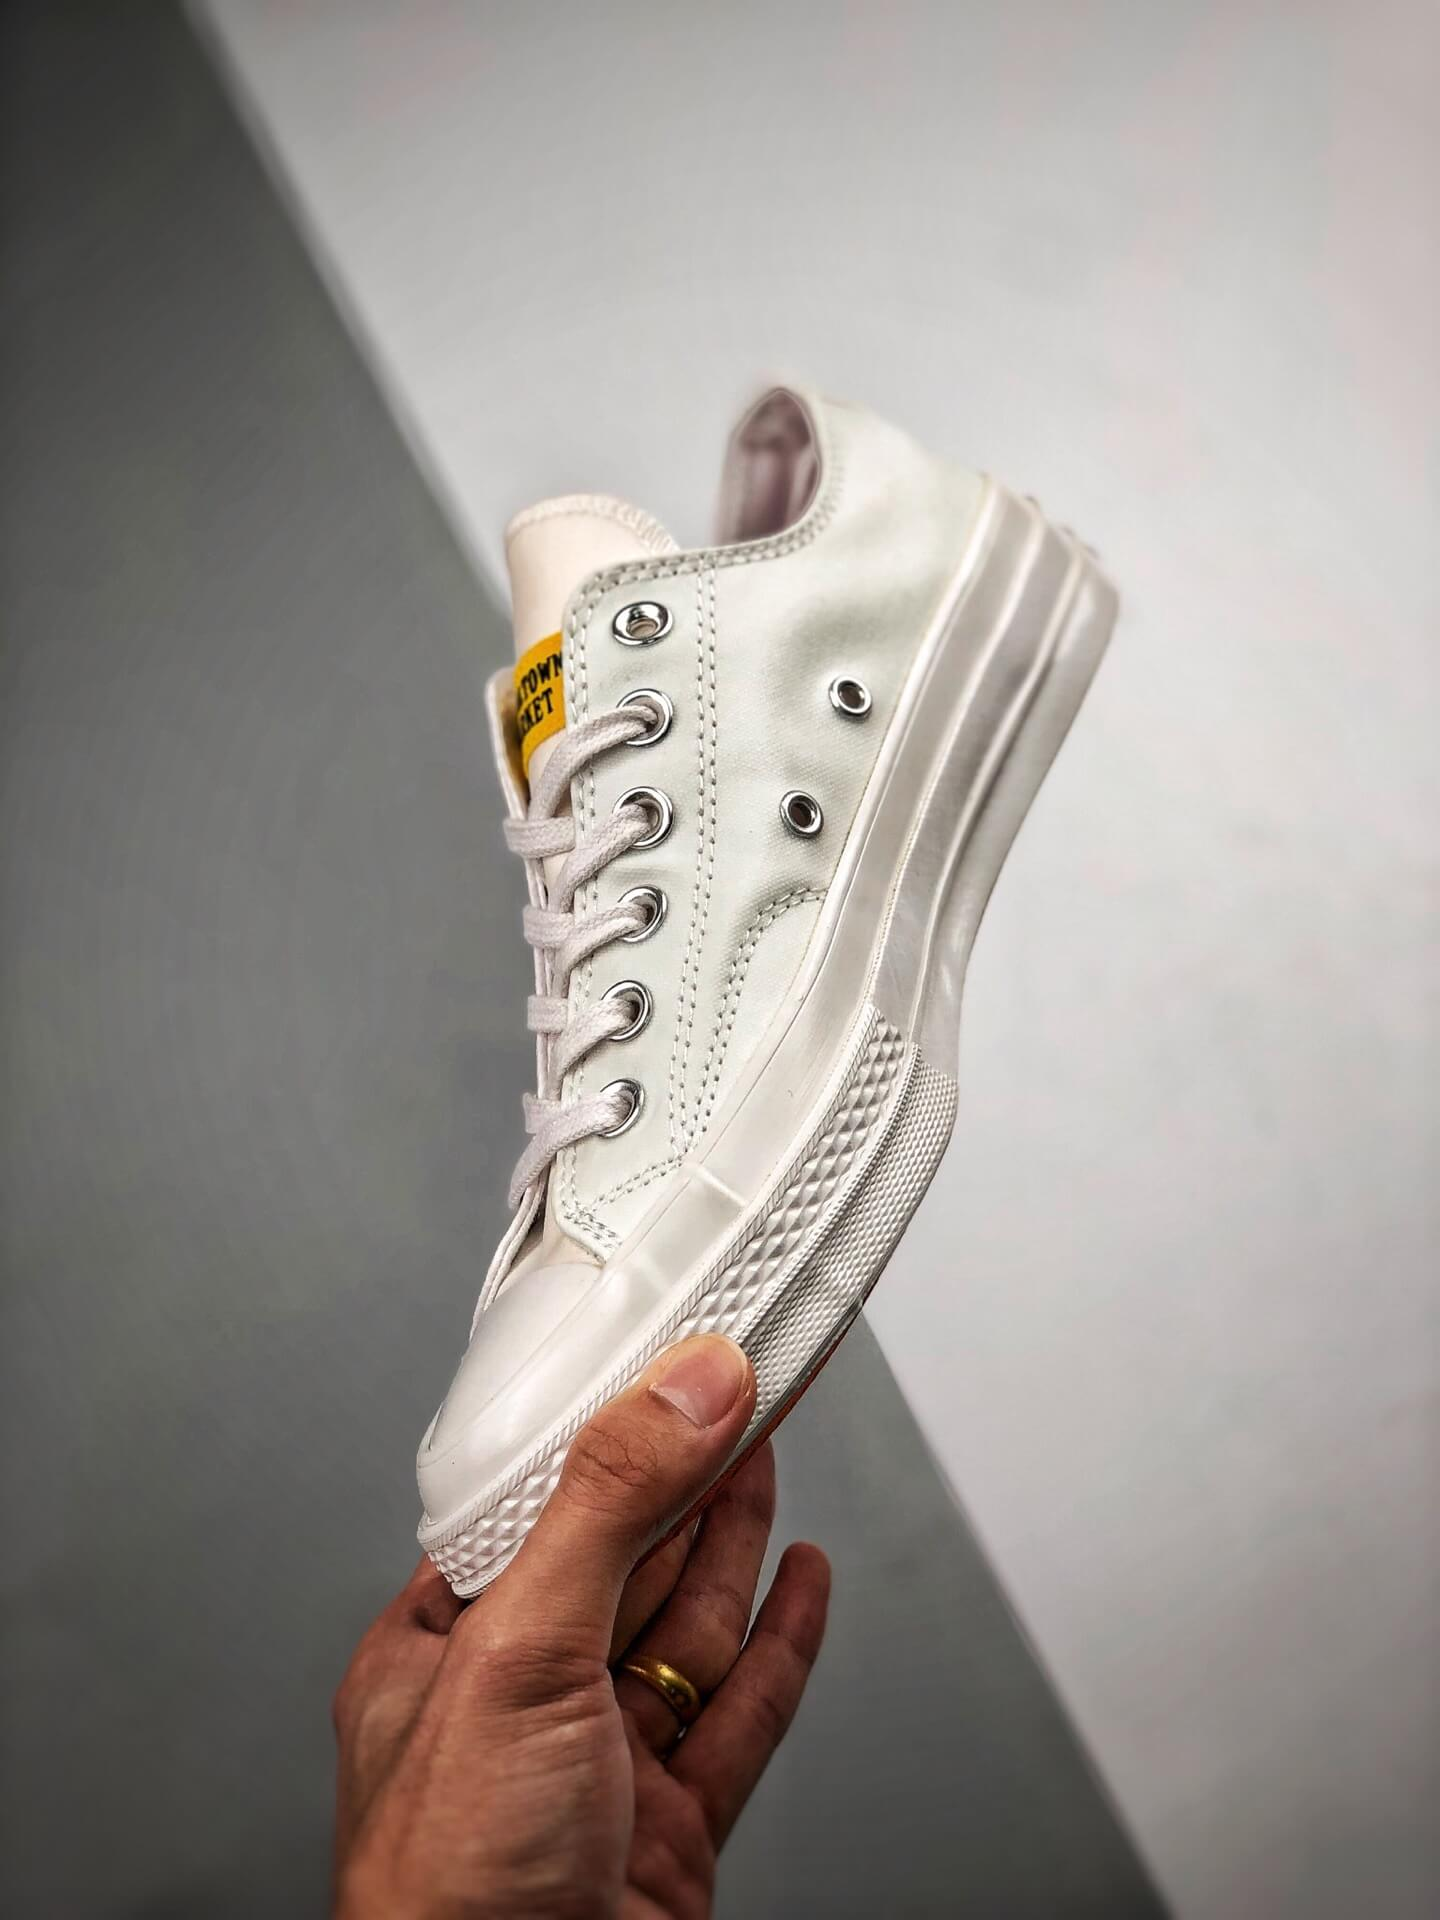 The Converse All Star Chuck Taylor Chinatown Market x Chuck 70 Ox UV Low Top Lifestyle RepShoes 04